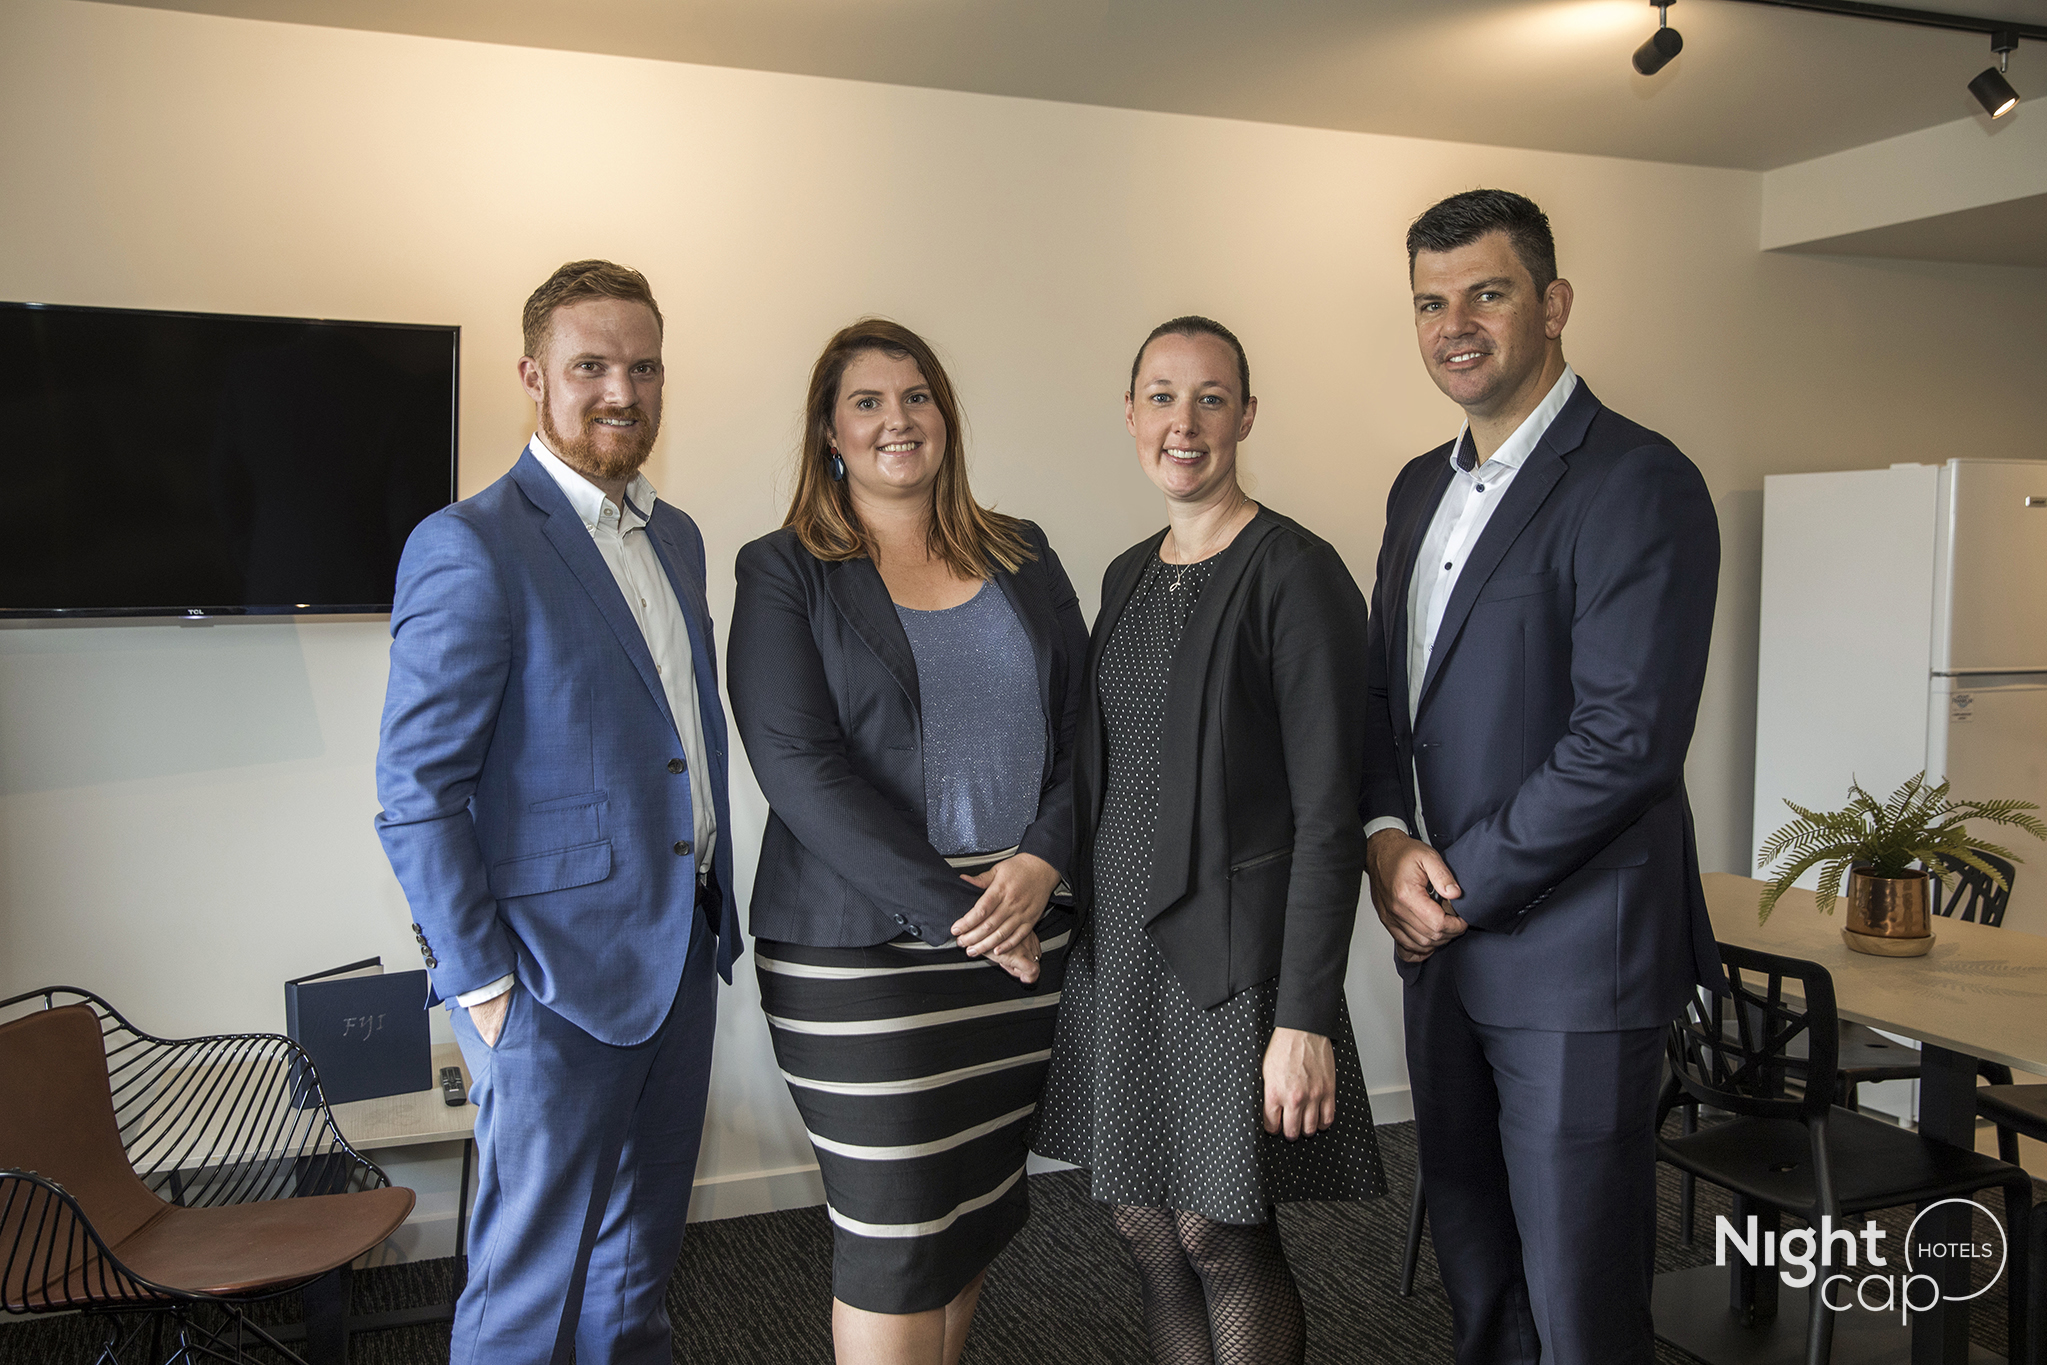 The ALH Group and Nightcap Hotels Accommodation Team (from left) Simon Kelleway, Grace Keath, Jackie Laynes and Brett Salter.